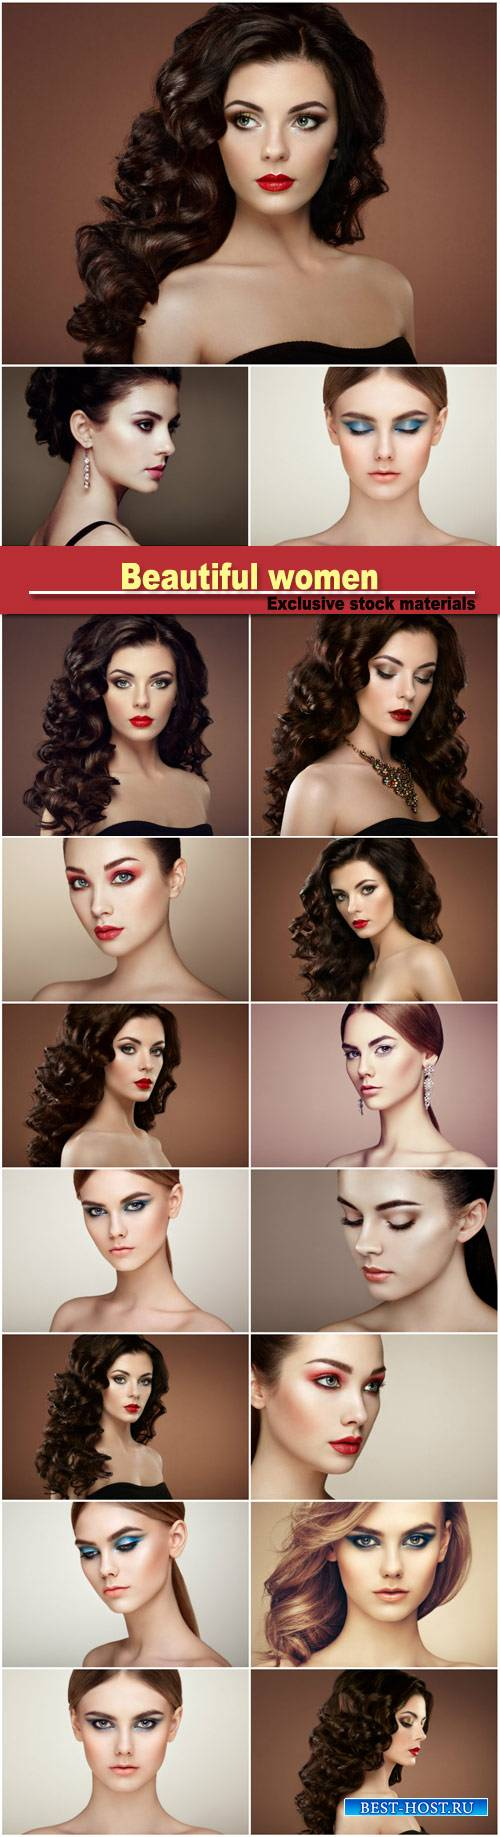 Beautiful women, stylish makeup, hairstyles